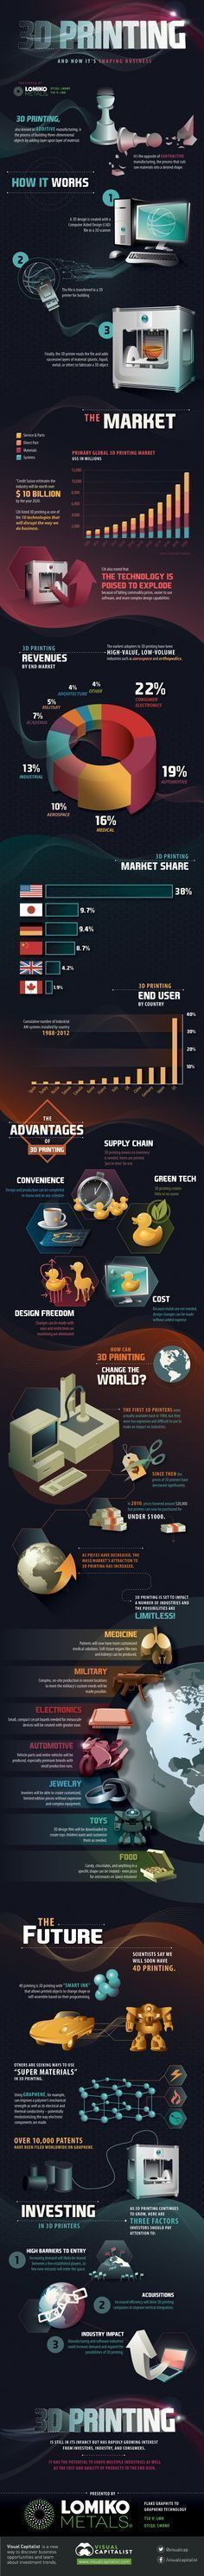 Awesome new 3D Printing Infograph #3dprintinginfographic